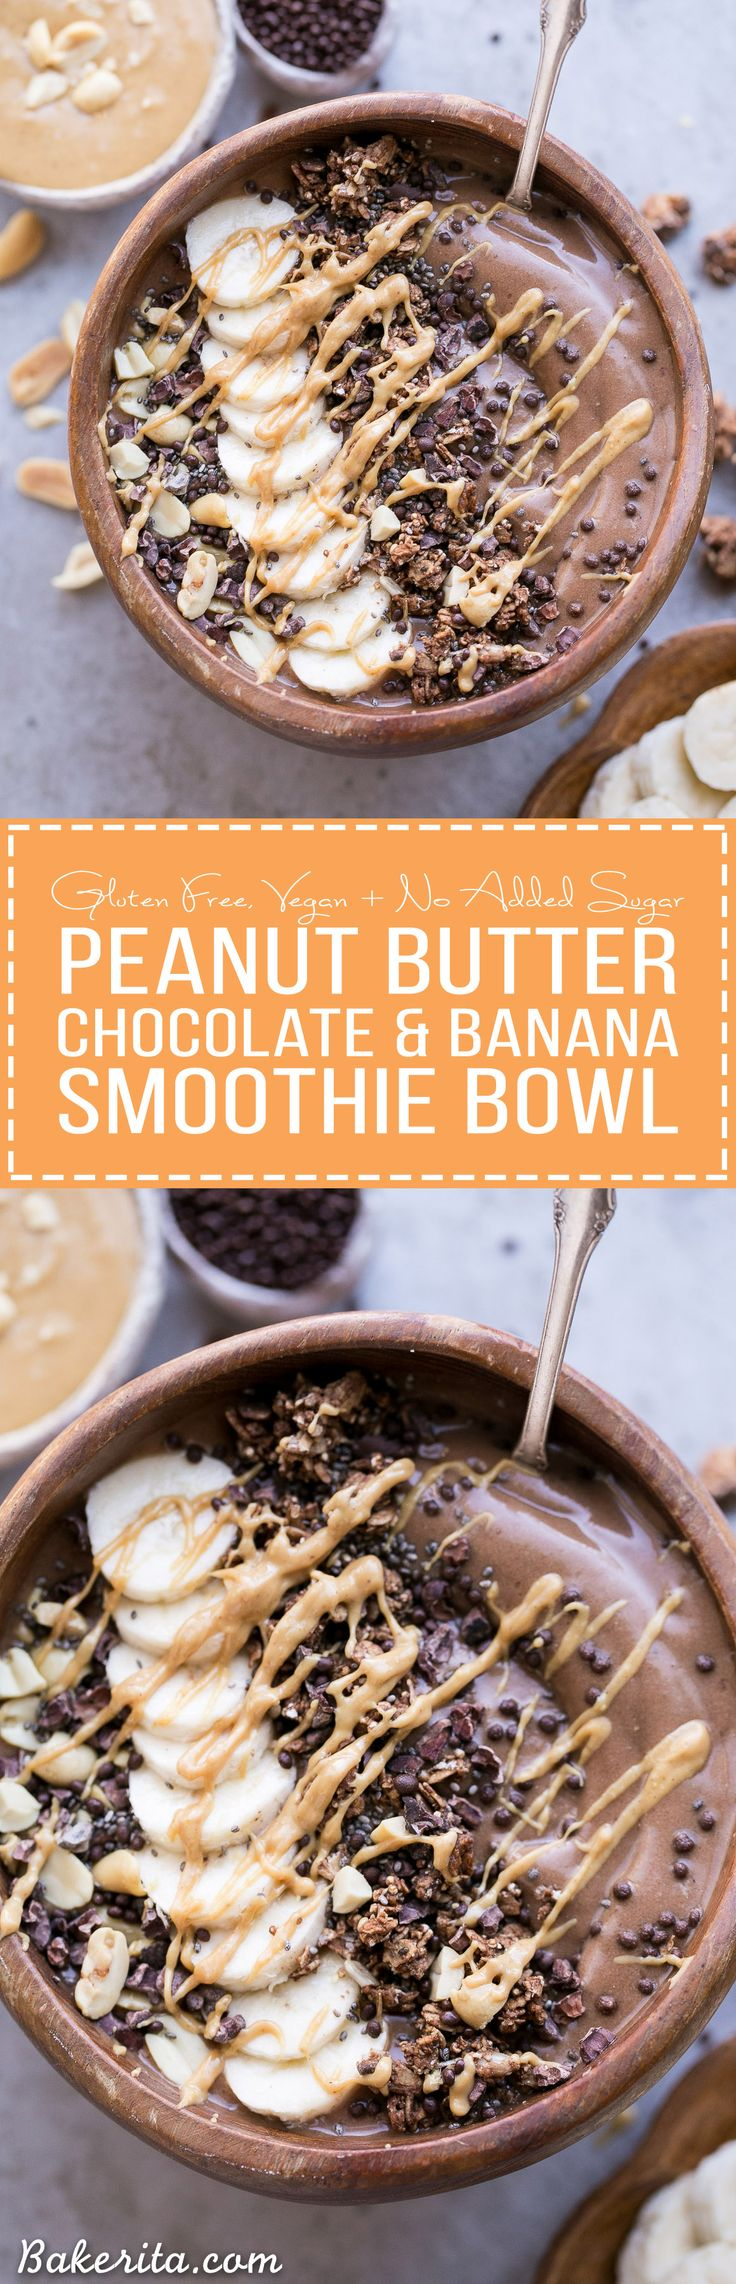 This Chocolate Peanut Butter Banana Smoothie Bowl tastes like a peanut butter cup, but it's actually a filling, superfood-packed breakfast that comes together in just 5 minutes! This gluten-free + veg